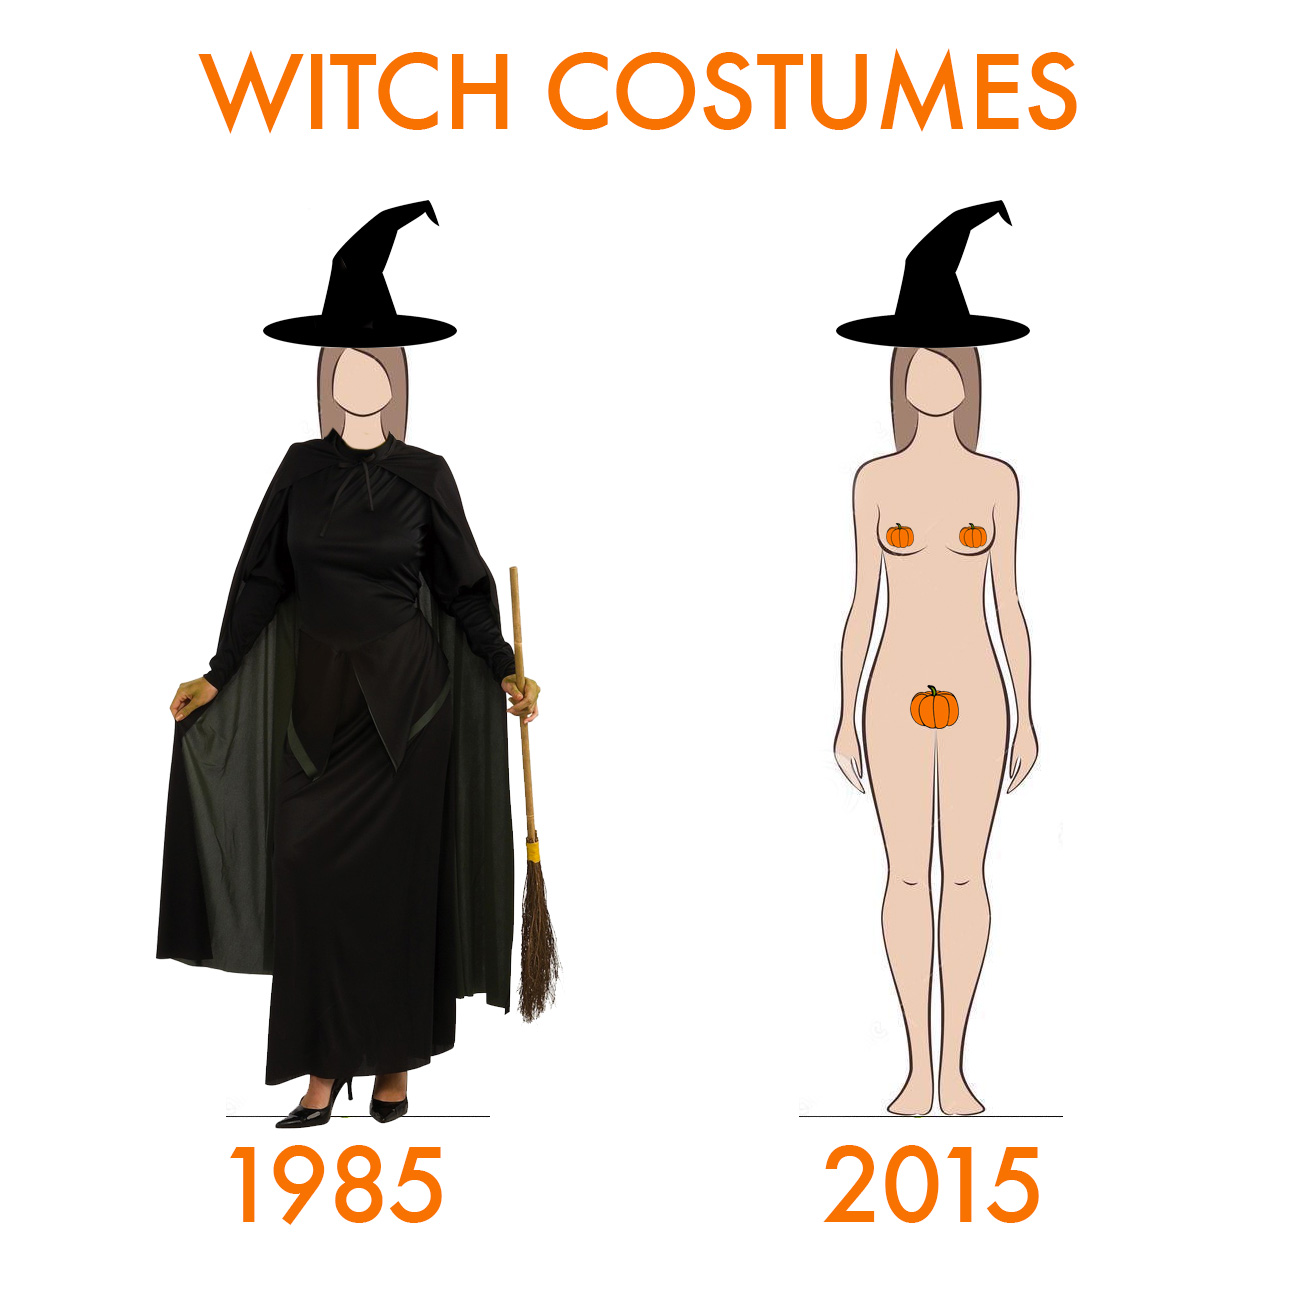 Witch Costumes: 1985 Vs. 2015